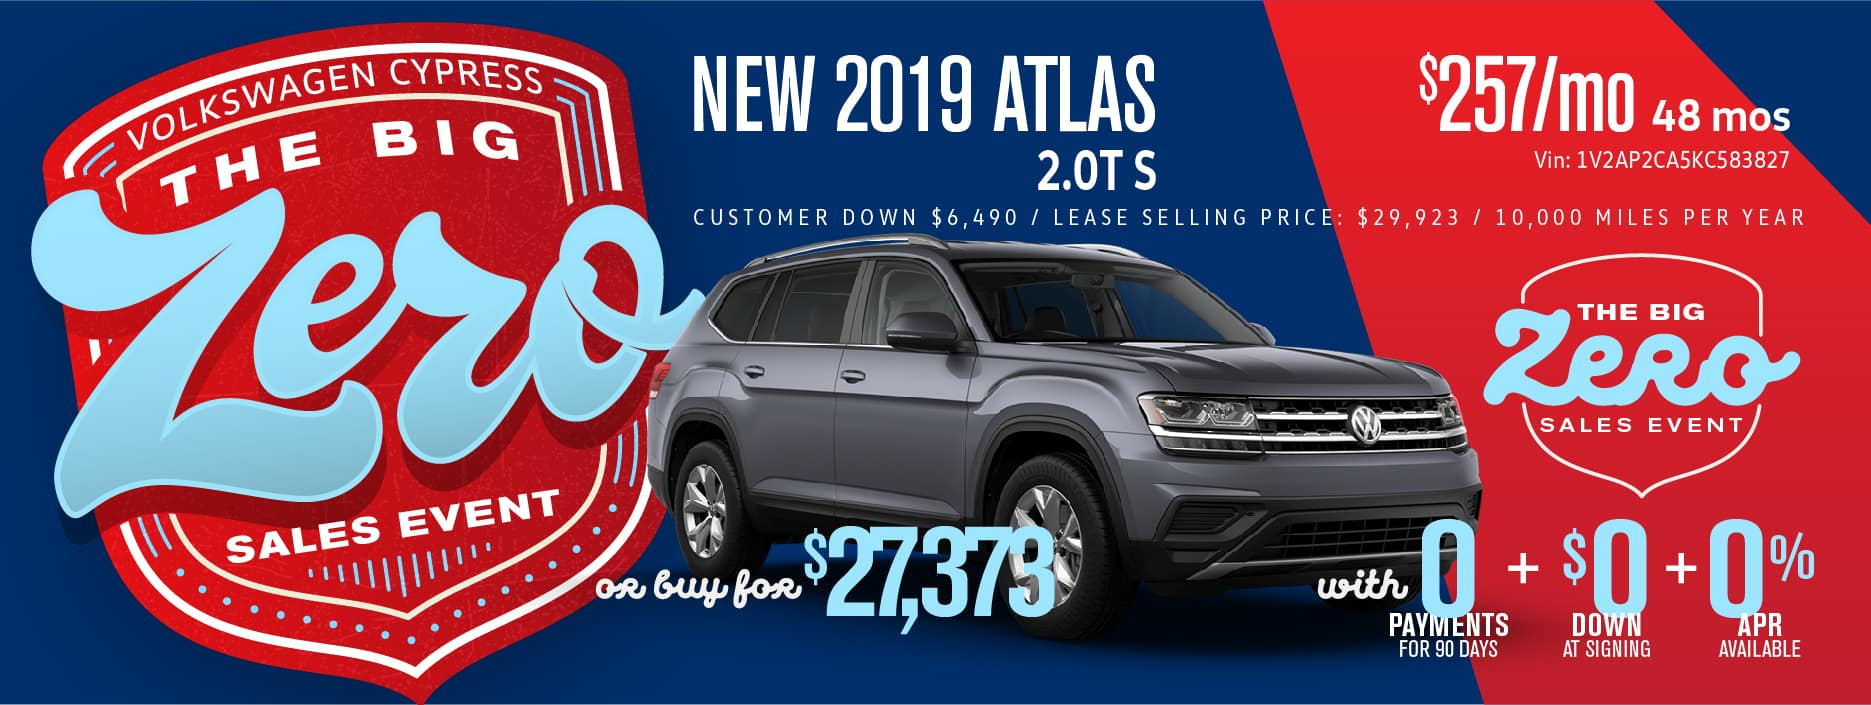 Get the Atlas for Zero Down and 0 payments 90 days!